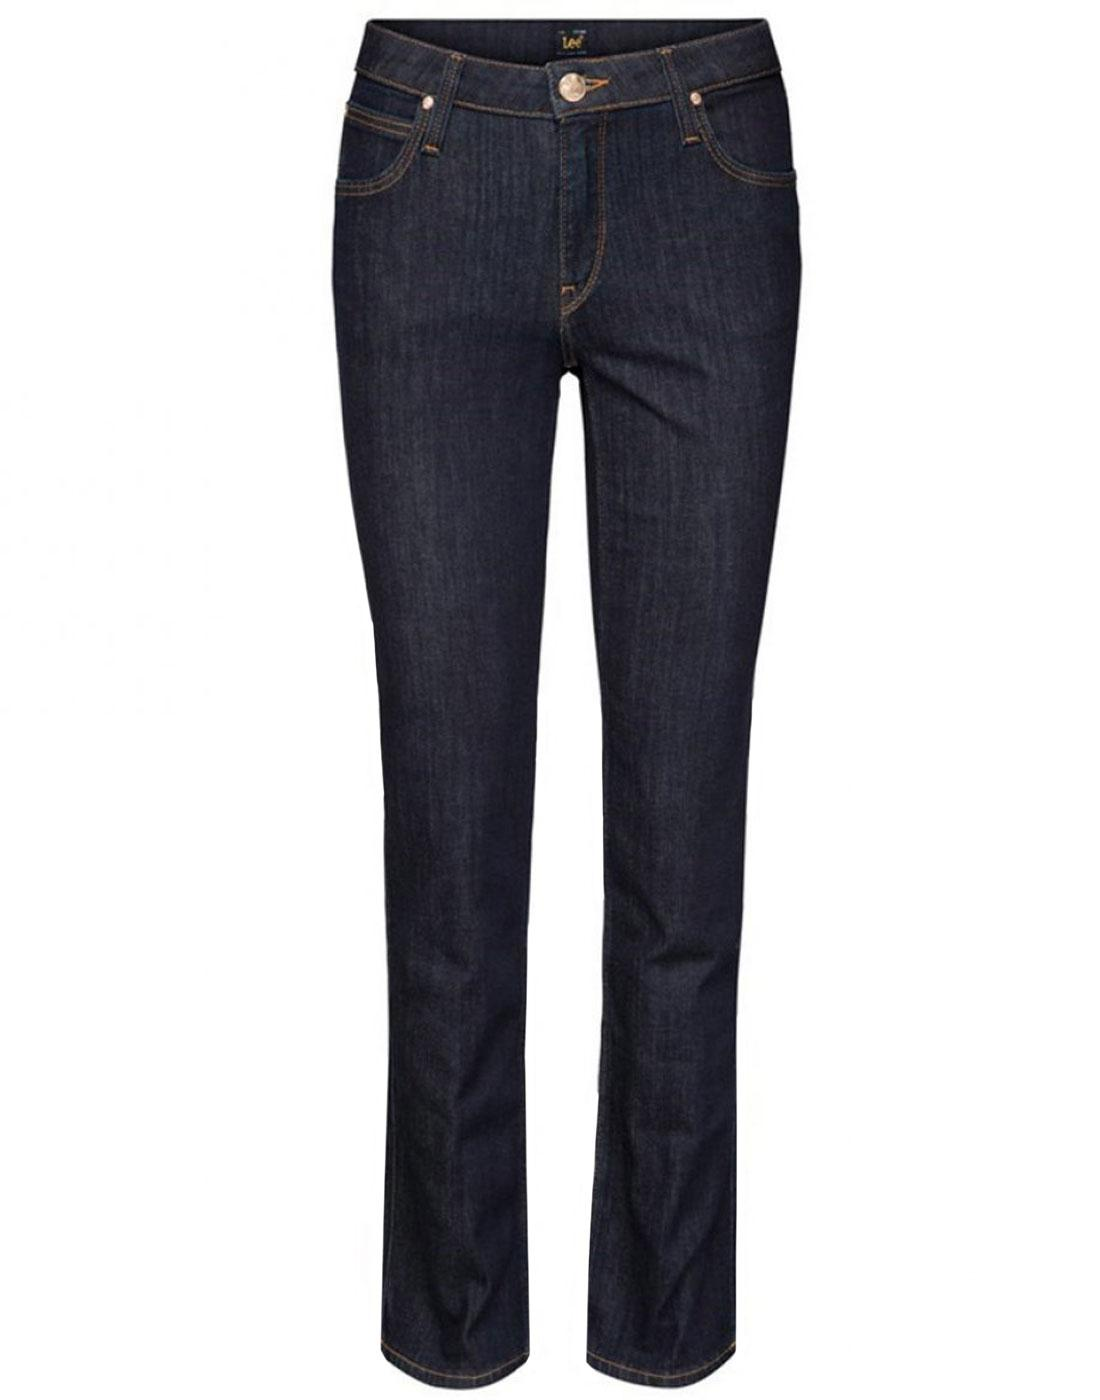 Marion LEE Stretch Deluxe Retro Straight Jeans SB